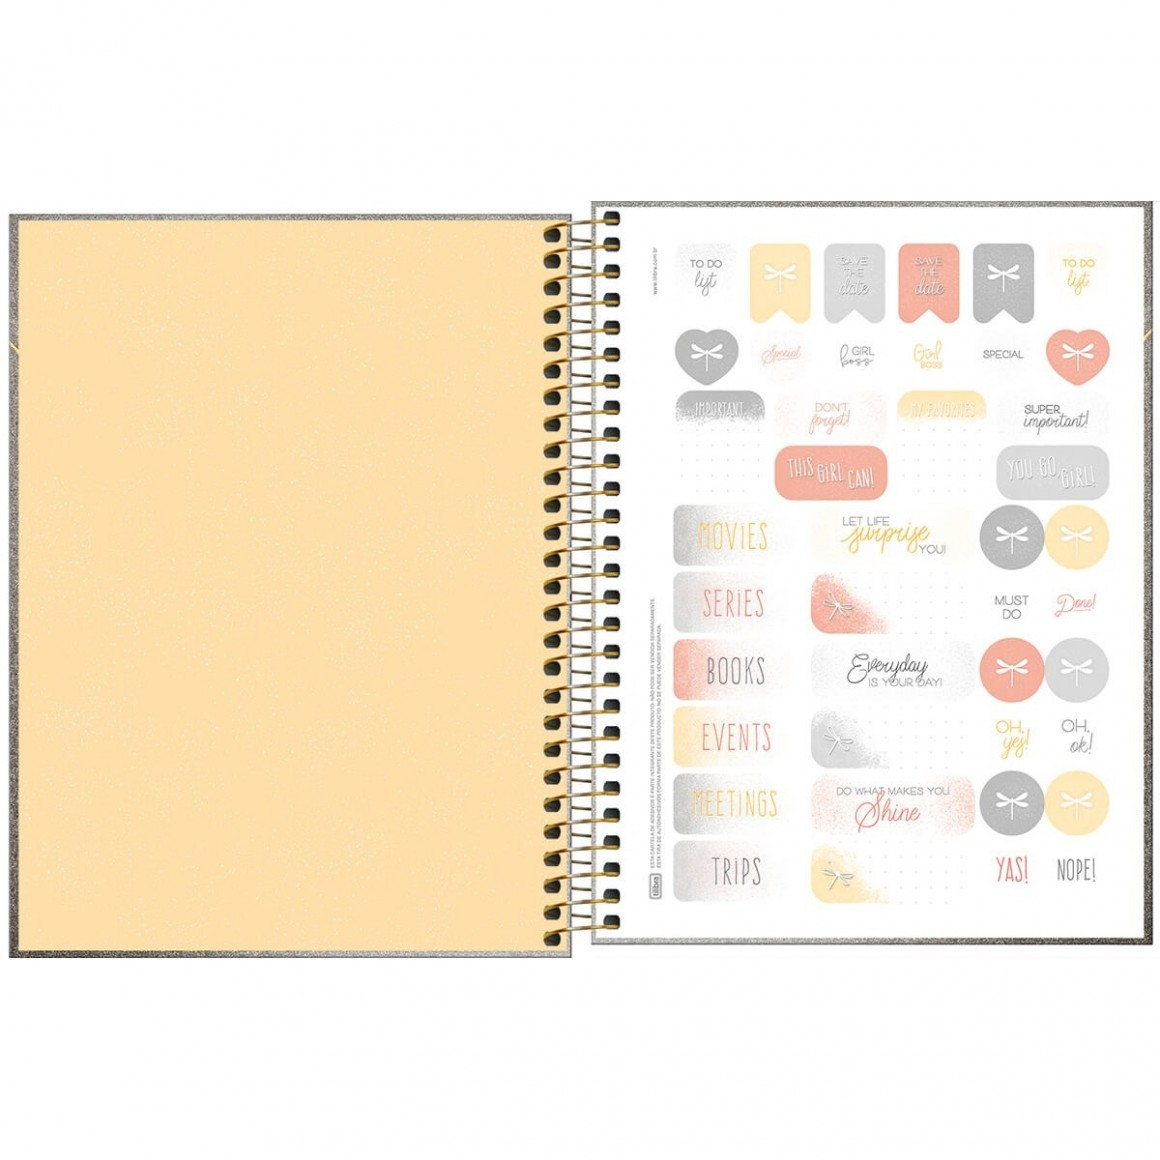 Planner Espiral Cambridge Shine 2020 - Tilibra